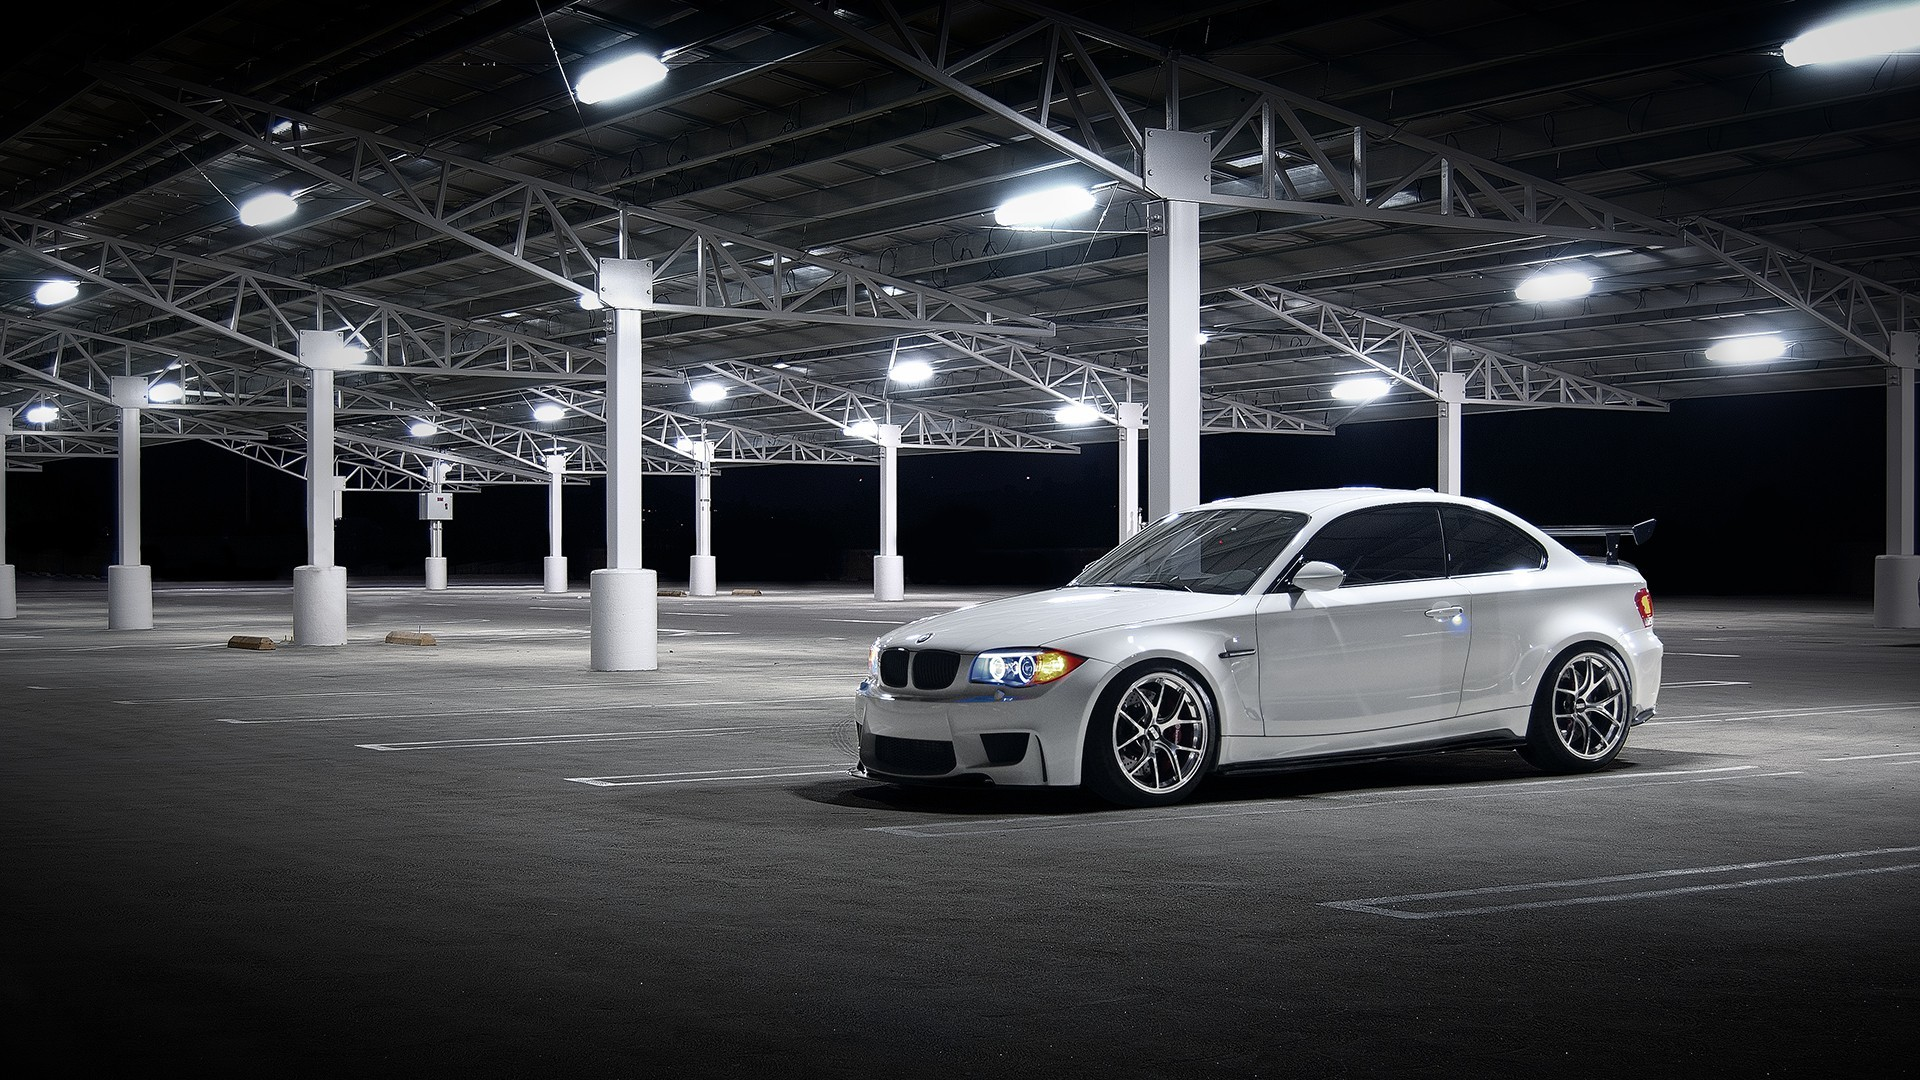 65 Bmw 135I Wallpapers on WallpaperPlay 1920x1080